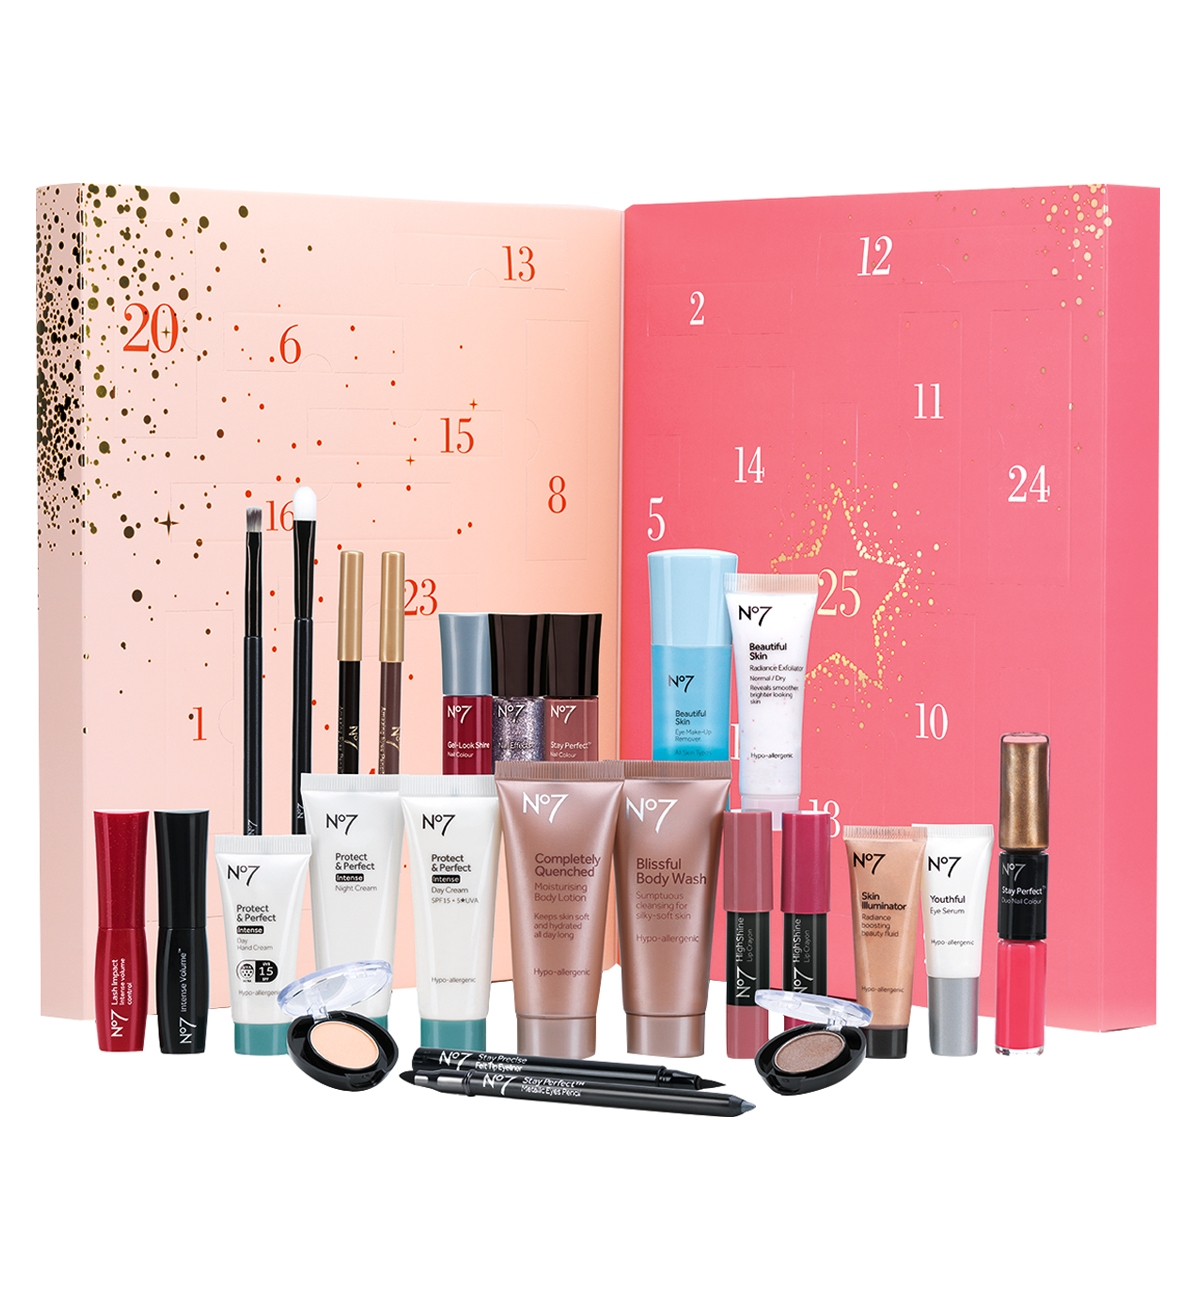 Beauty Advent Calendar.The Best Of The 2014 Beauty Advent Calendars Lifestylelinked Com